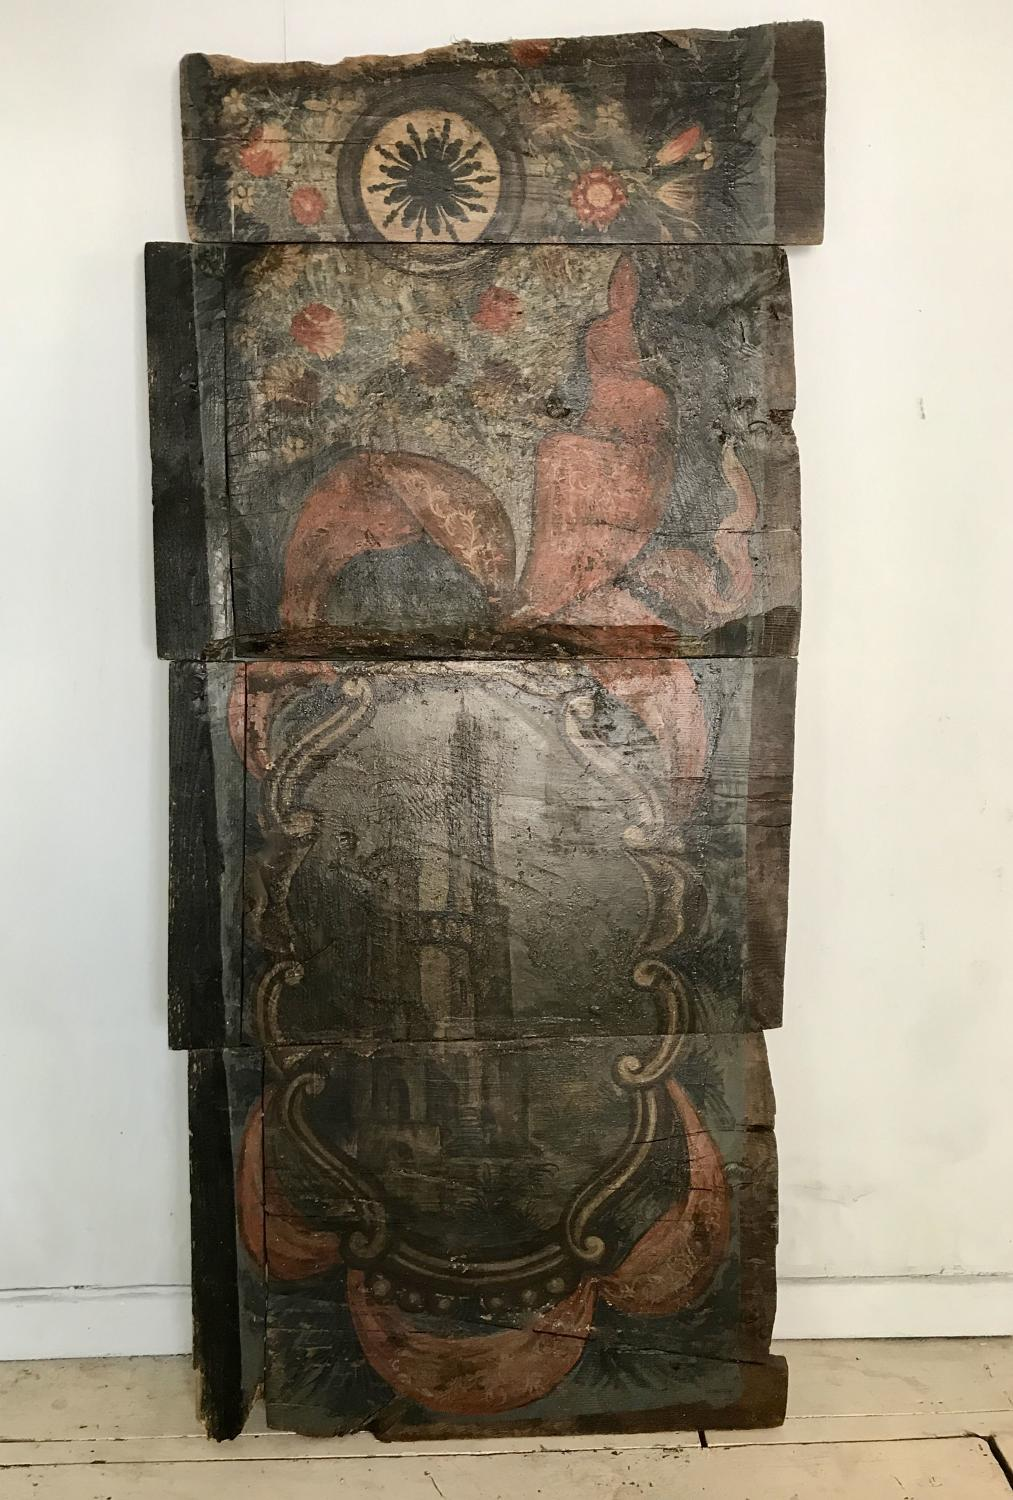 Pair of Large 18th C Italian Hand Painted Trompe L'Oeil Panels